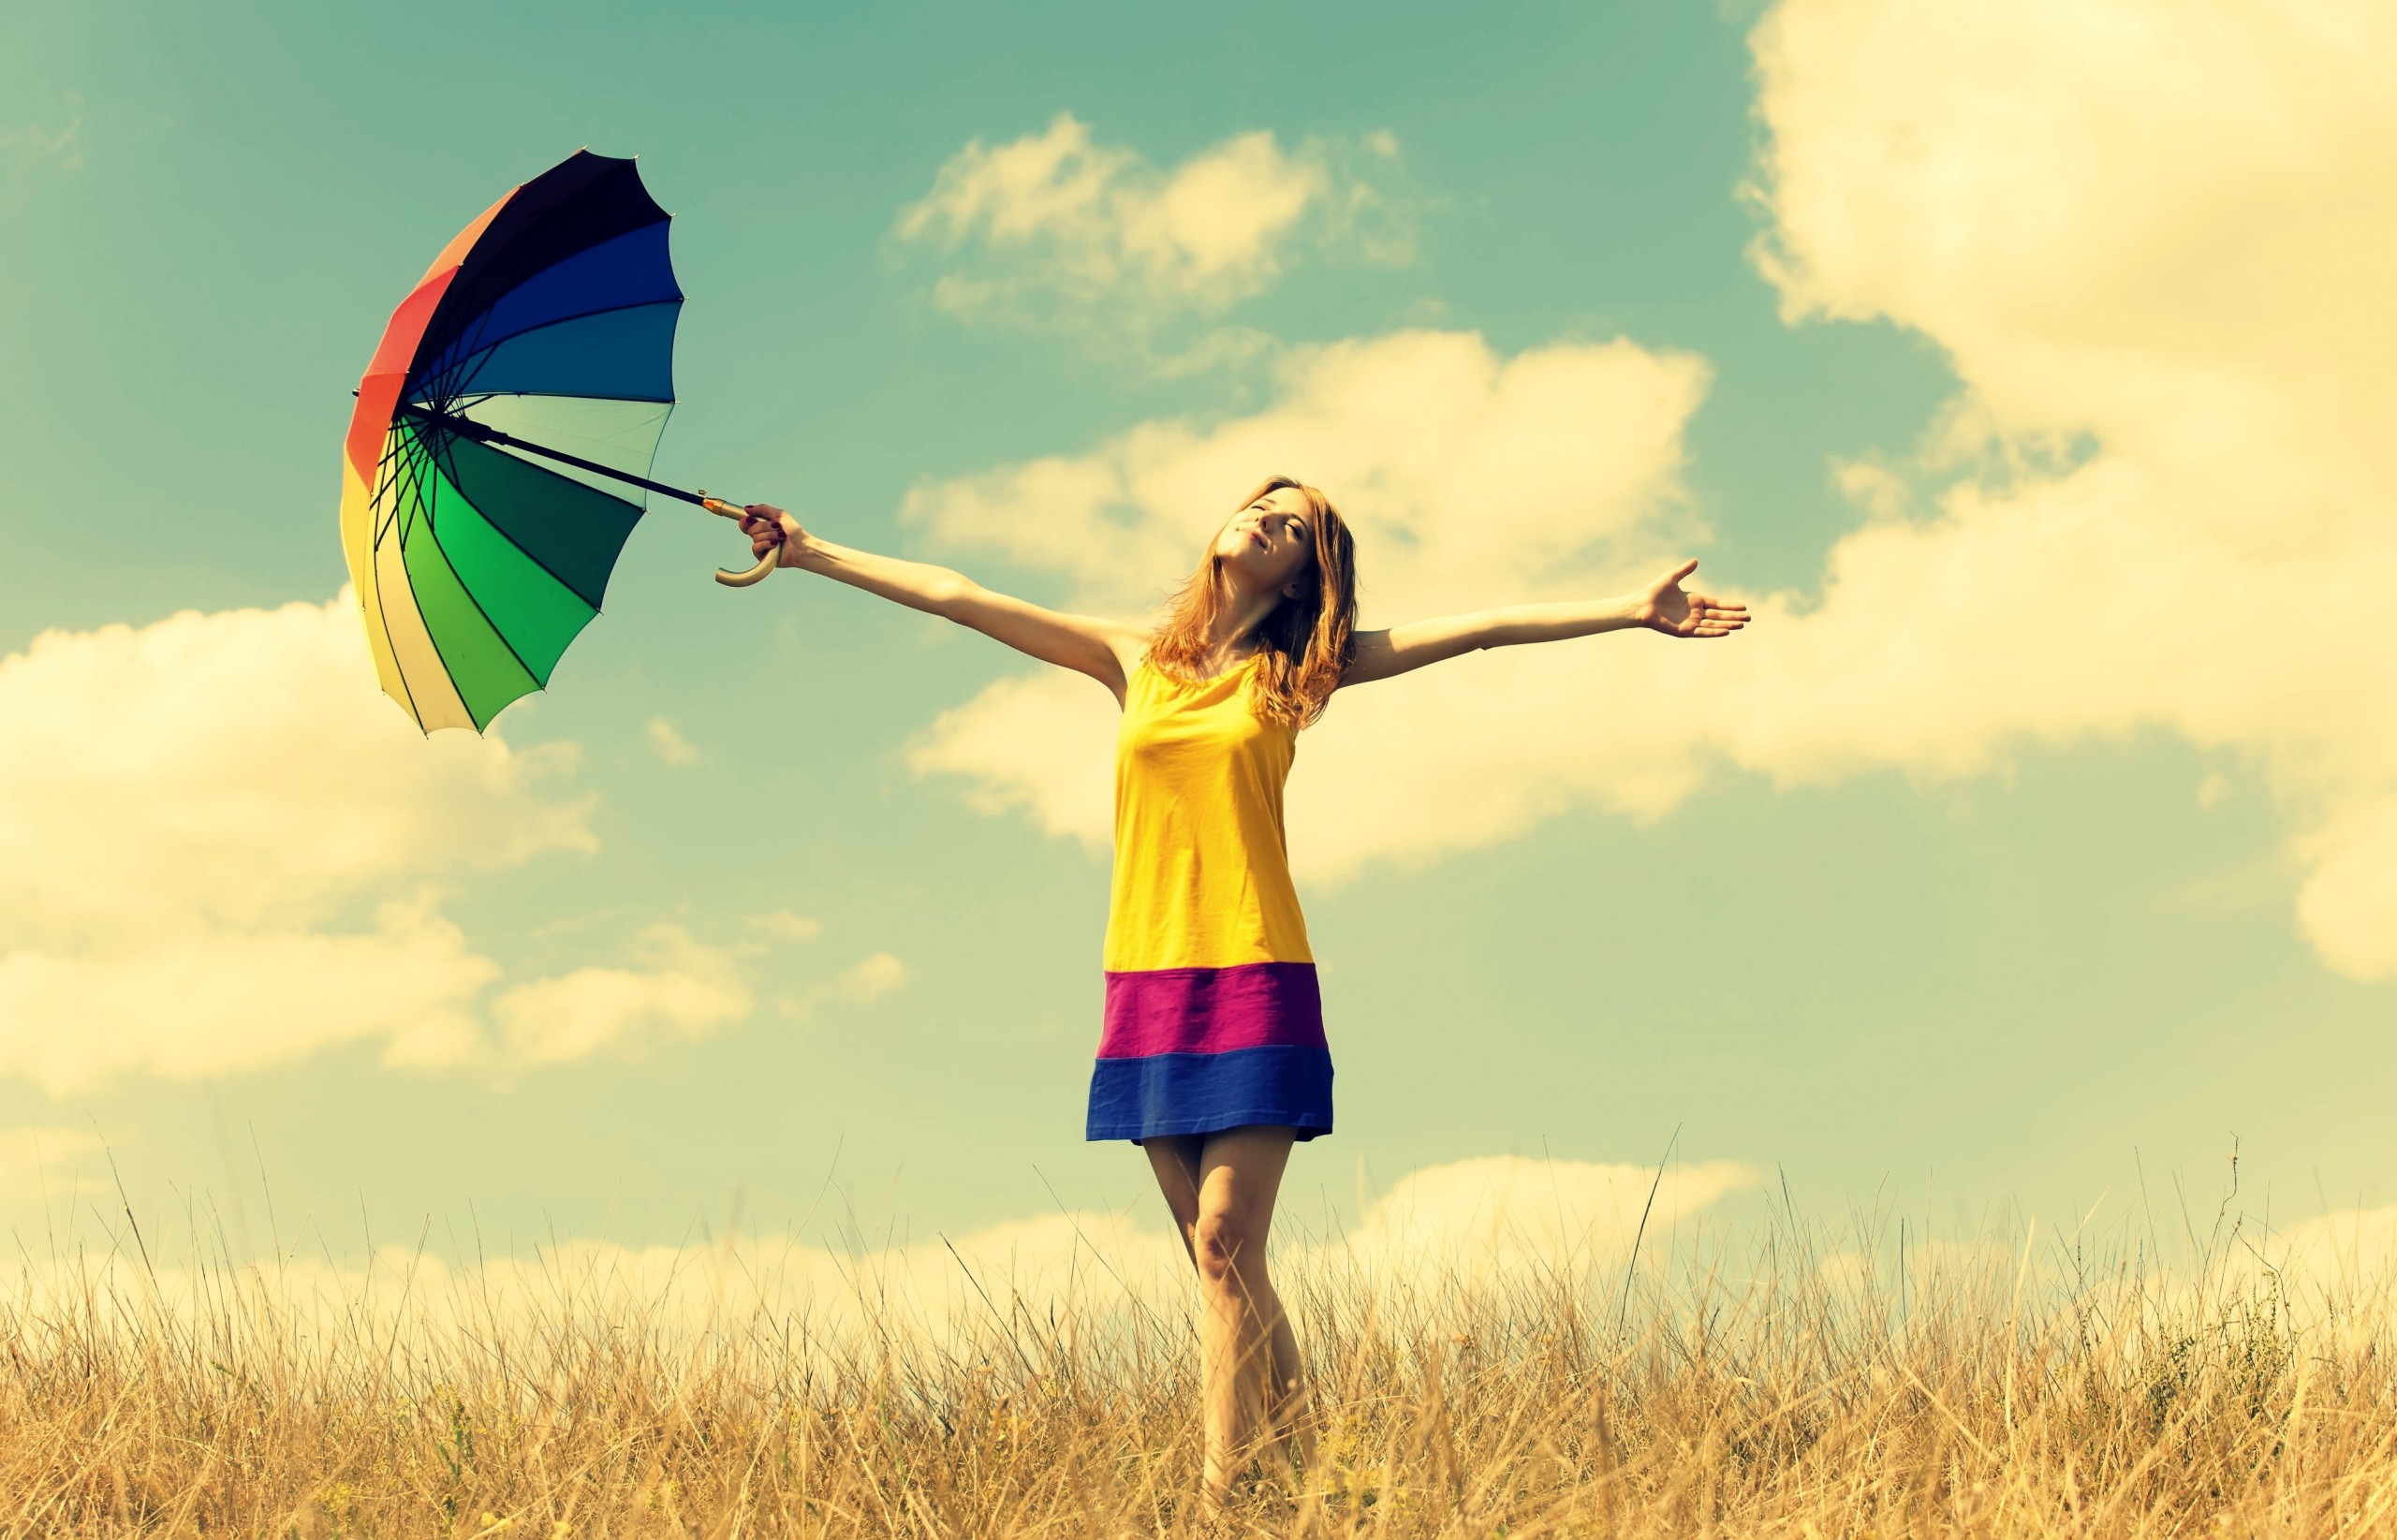 7 Tips to have the best day ever